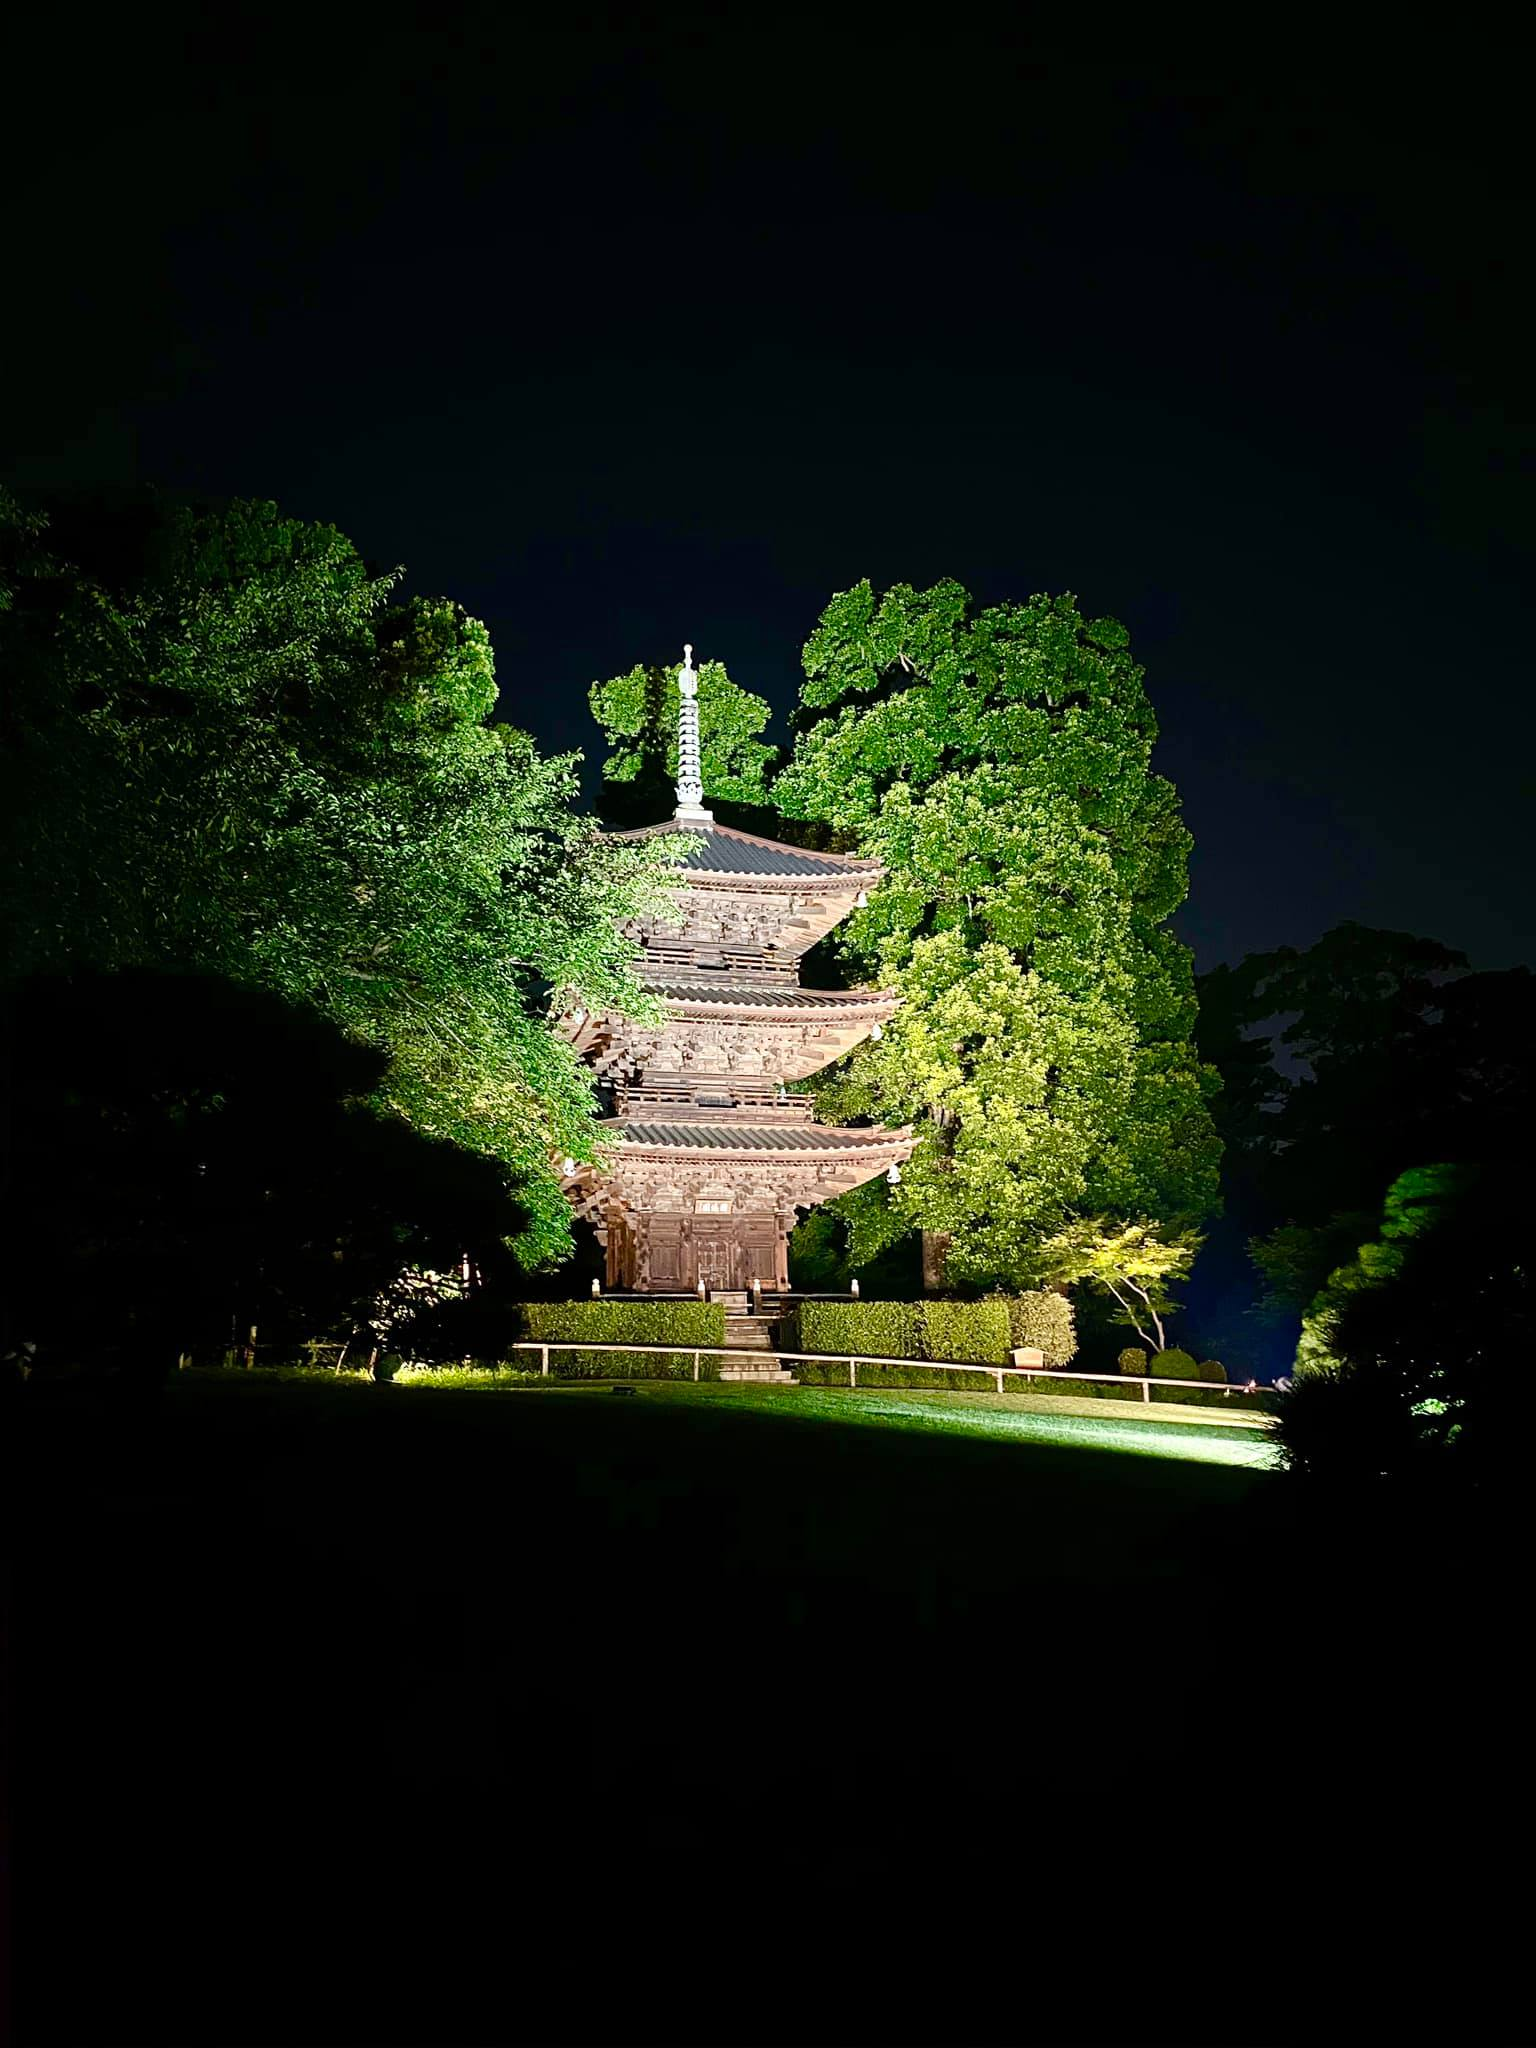 The garden of Chinzanso hotel in Tokyo, a member of Preferred Hotels and Resorts